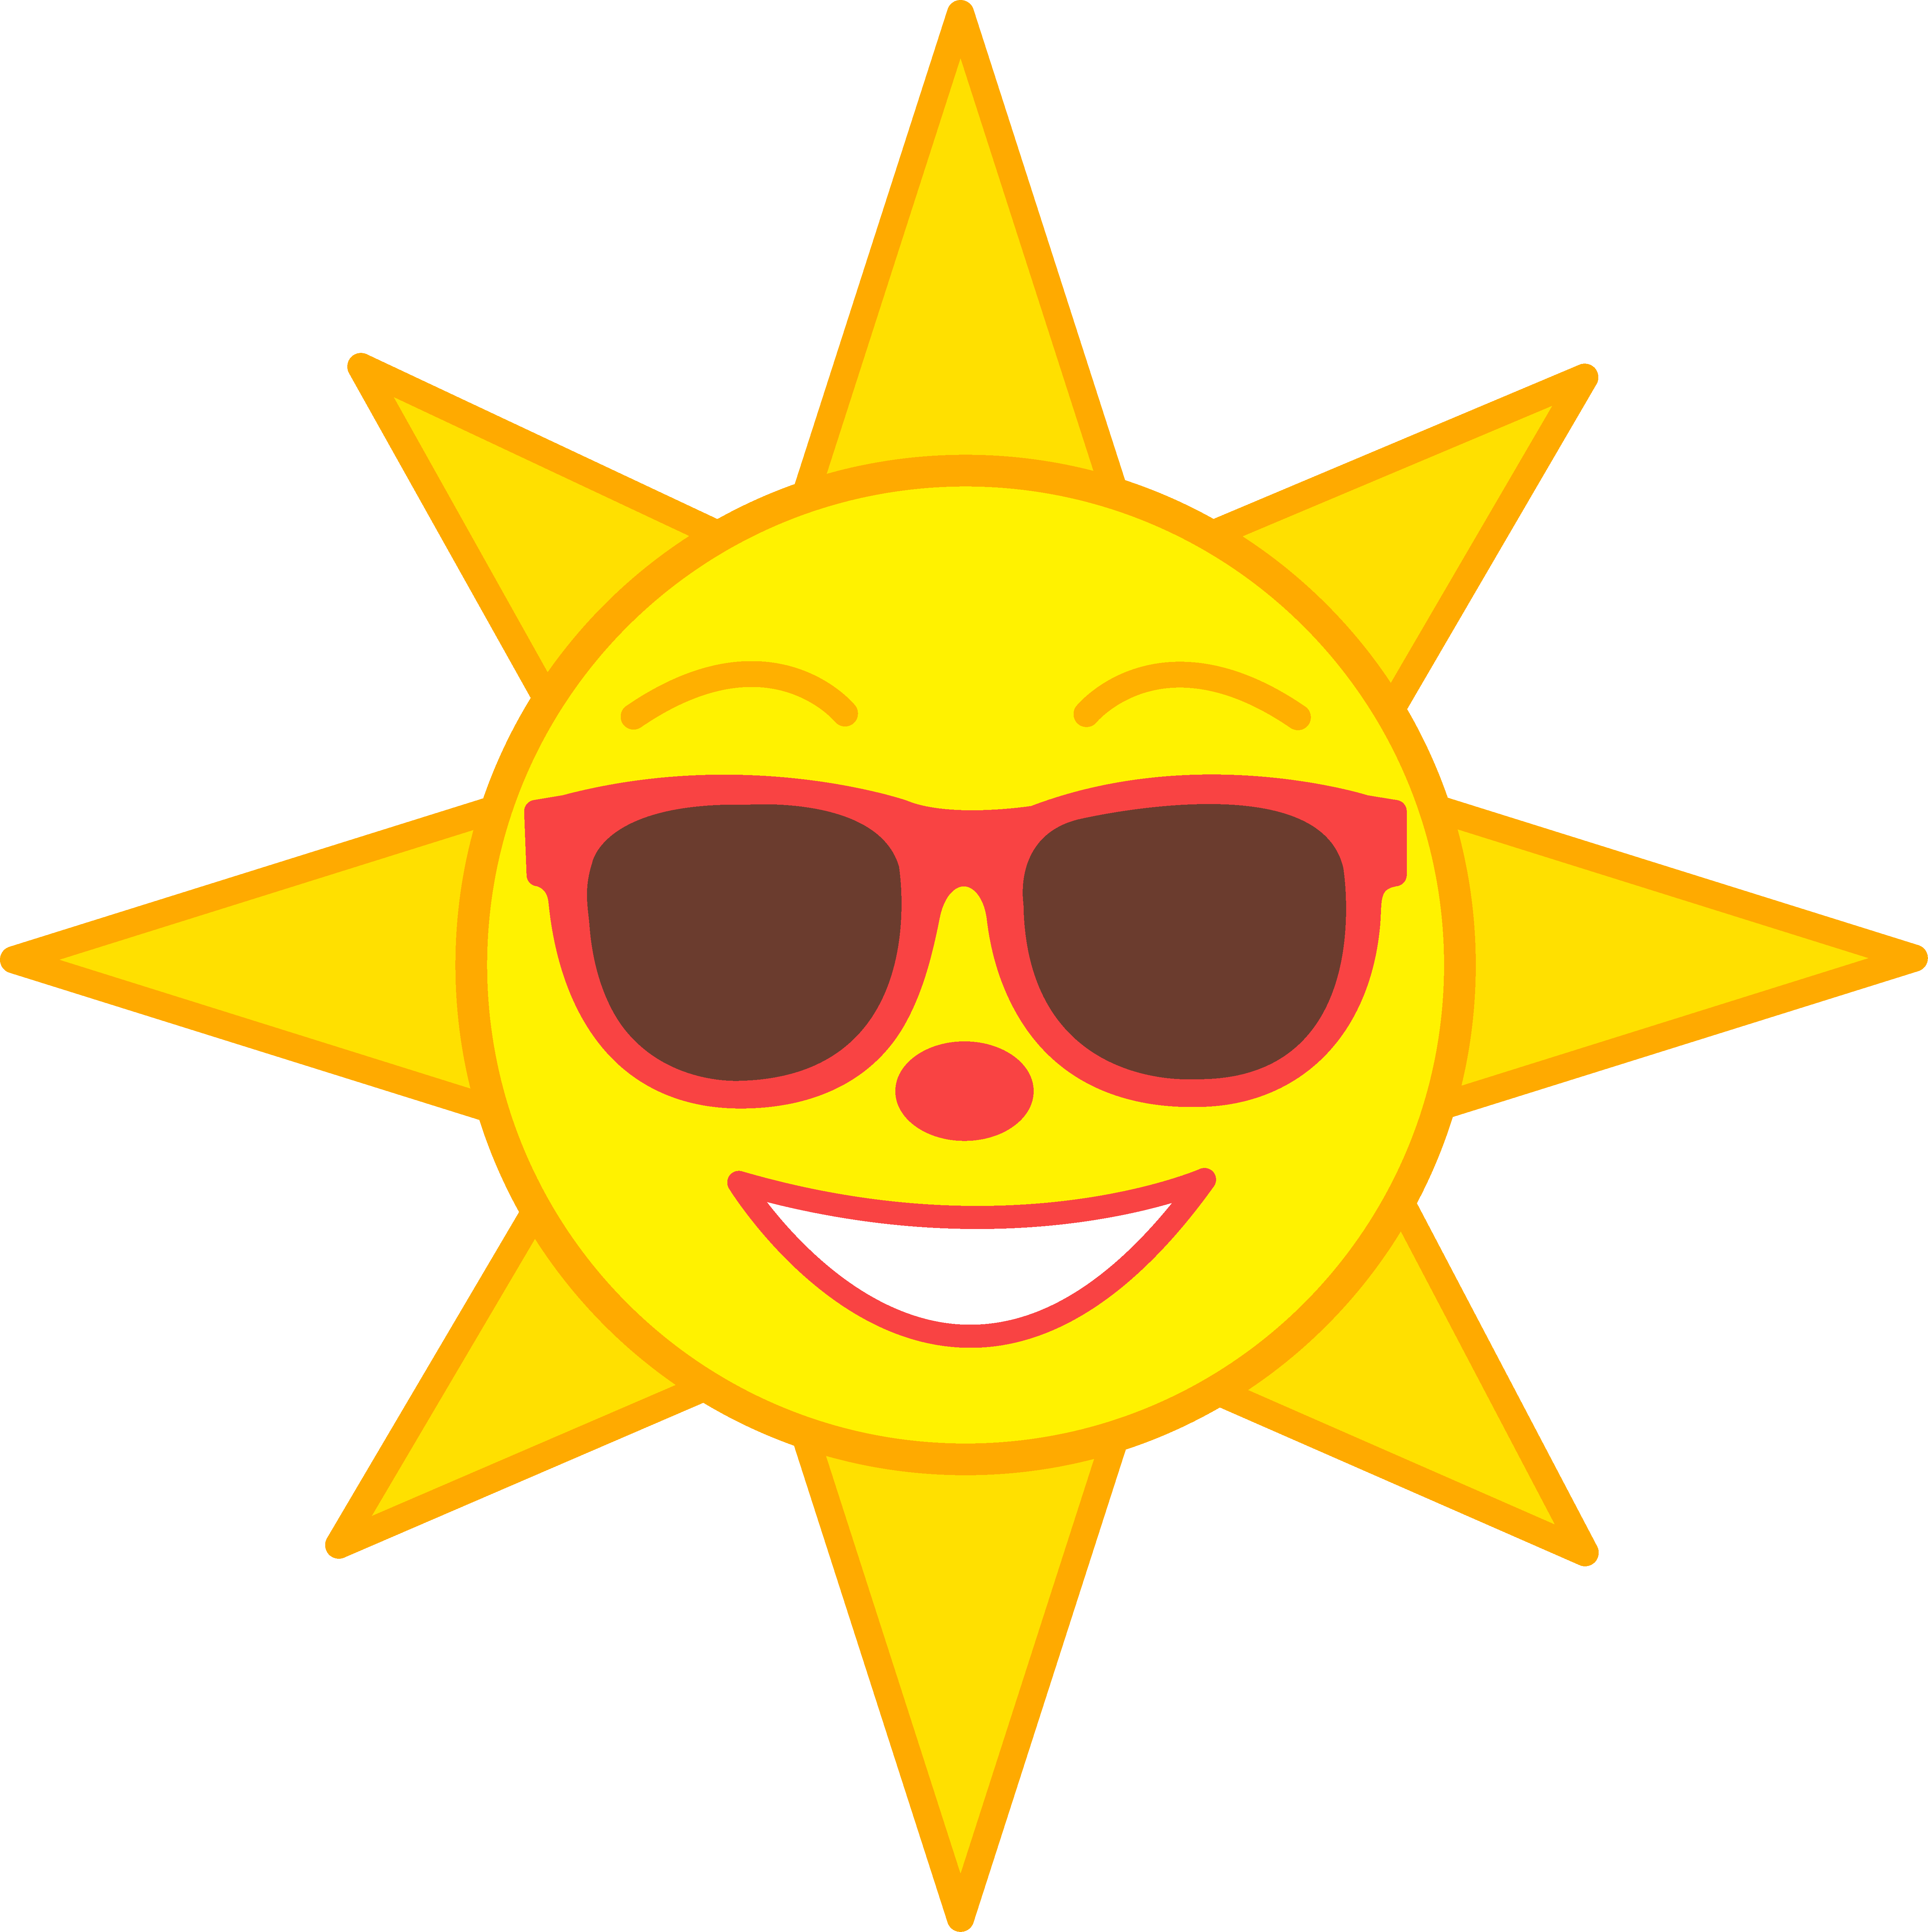 Happy Sun Clipart | Clipart Panda - Free Clipart Images